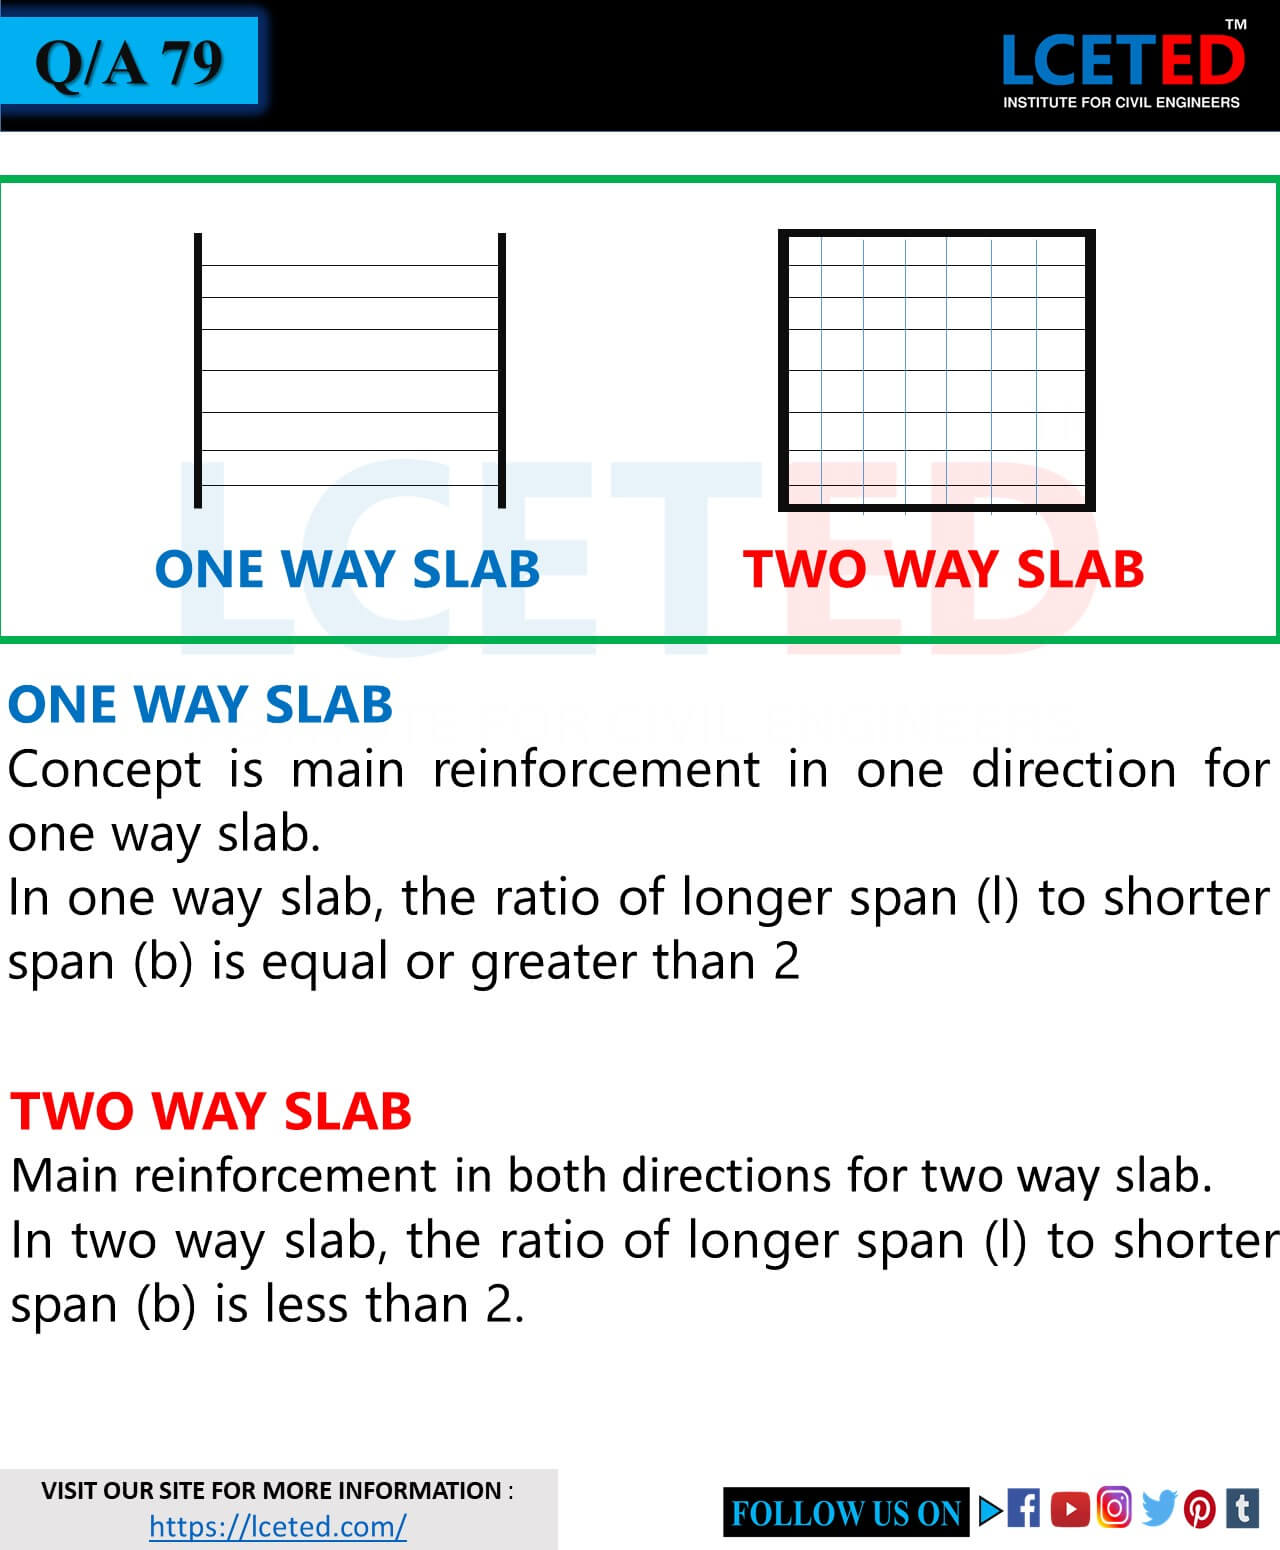 WHAT IS CONVENTIONAL SLAB